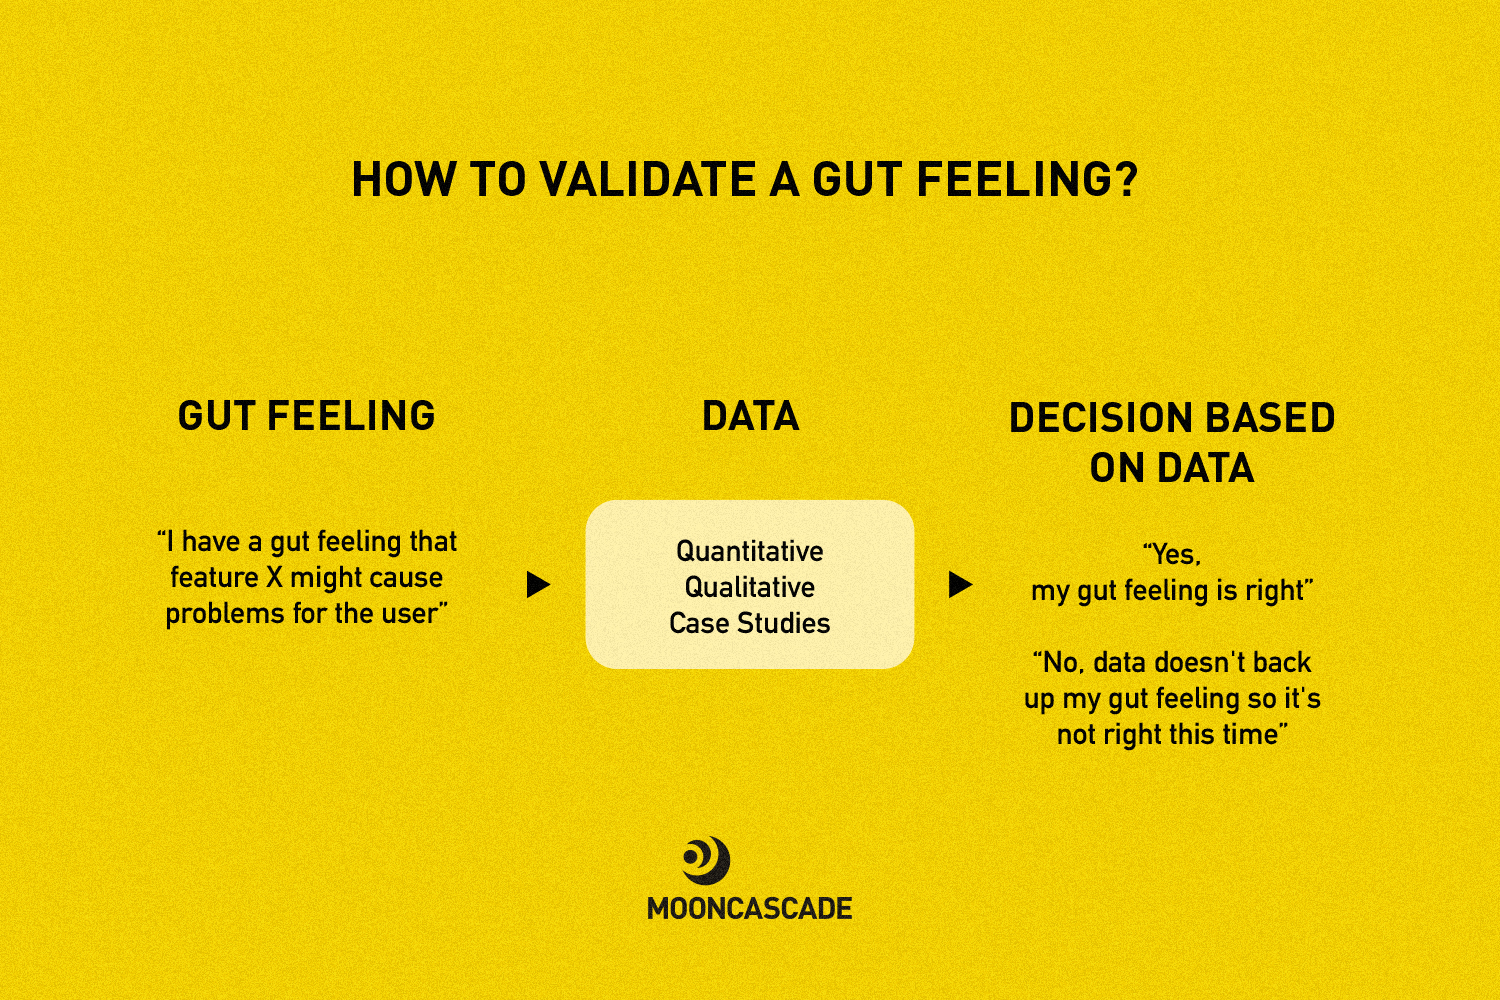 Use data to validate your gut feeling when creating app design